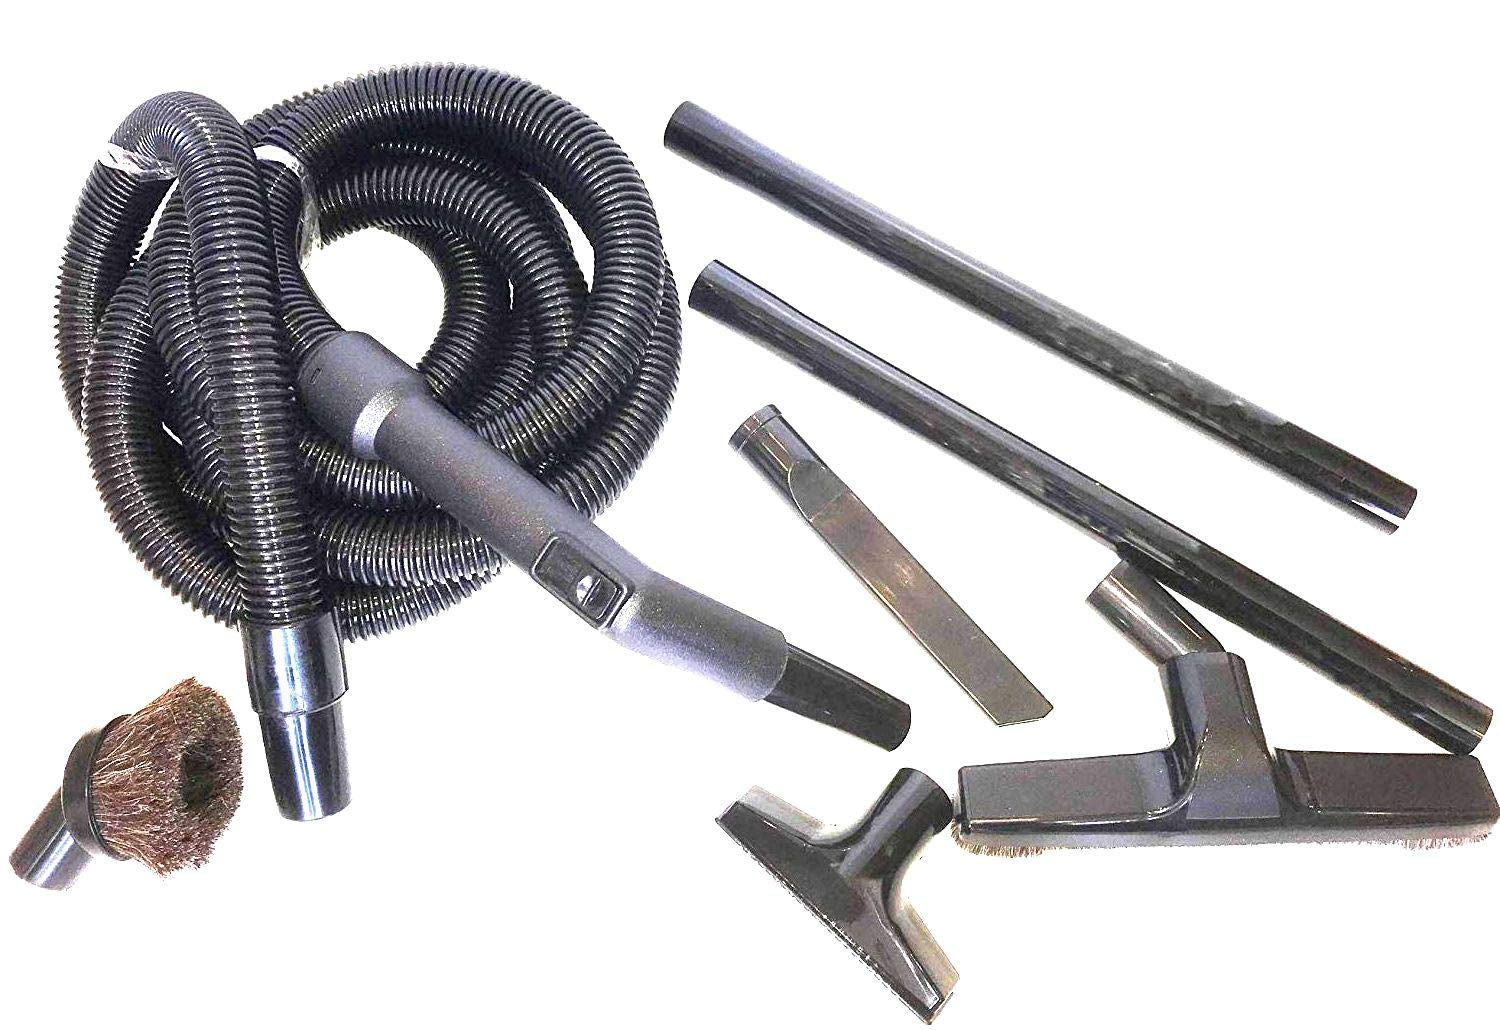 Maresh Products Vacuum Cleaner Attachment Flexible Extension Hose Kit with Tool Accessories for Many Brand Names Including Riccar, Simplicity, Eureka and Some Models of Shark Navigator